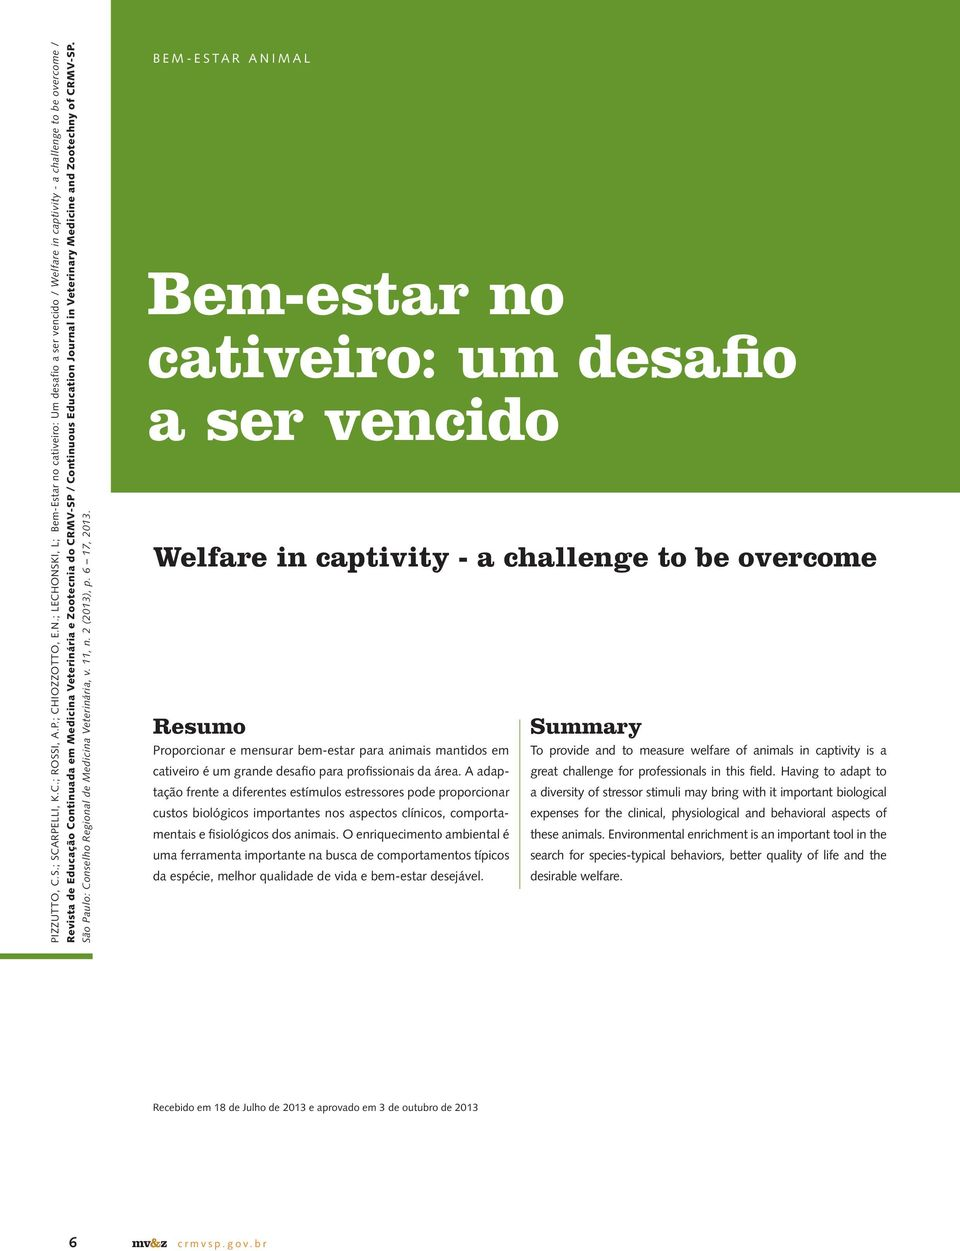 Continuous Education Journal in Veterinary Medicine and Zootechny of CRMV-SP. São Paulo: Conselho Regional de Medicina Veterinária, v. 11, n. 2 (2013), p. 6 17, 2013.